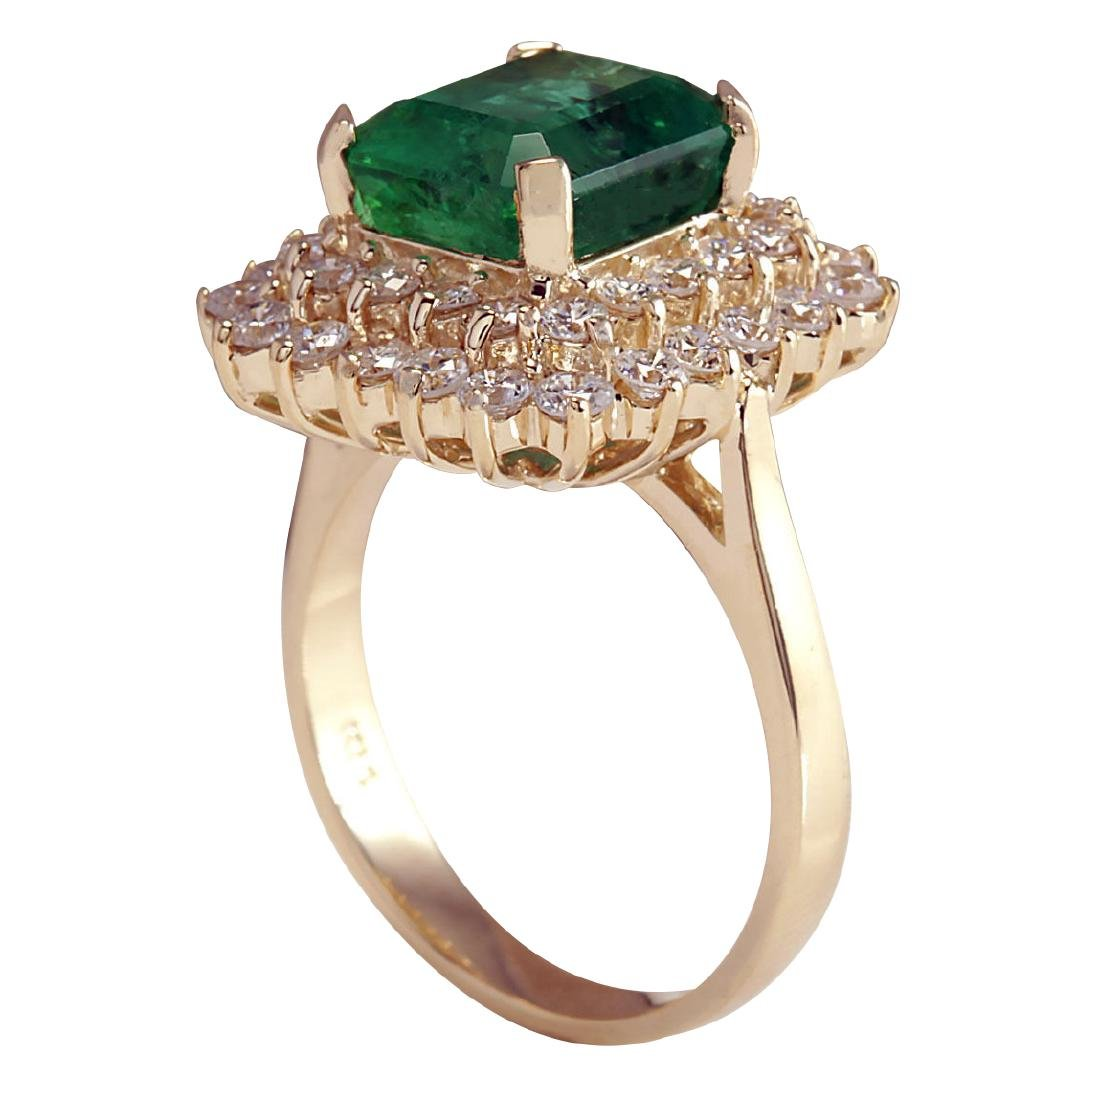 5.51CTW Natural Emerald And Diamond Ring 18K Solid - 3